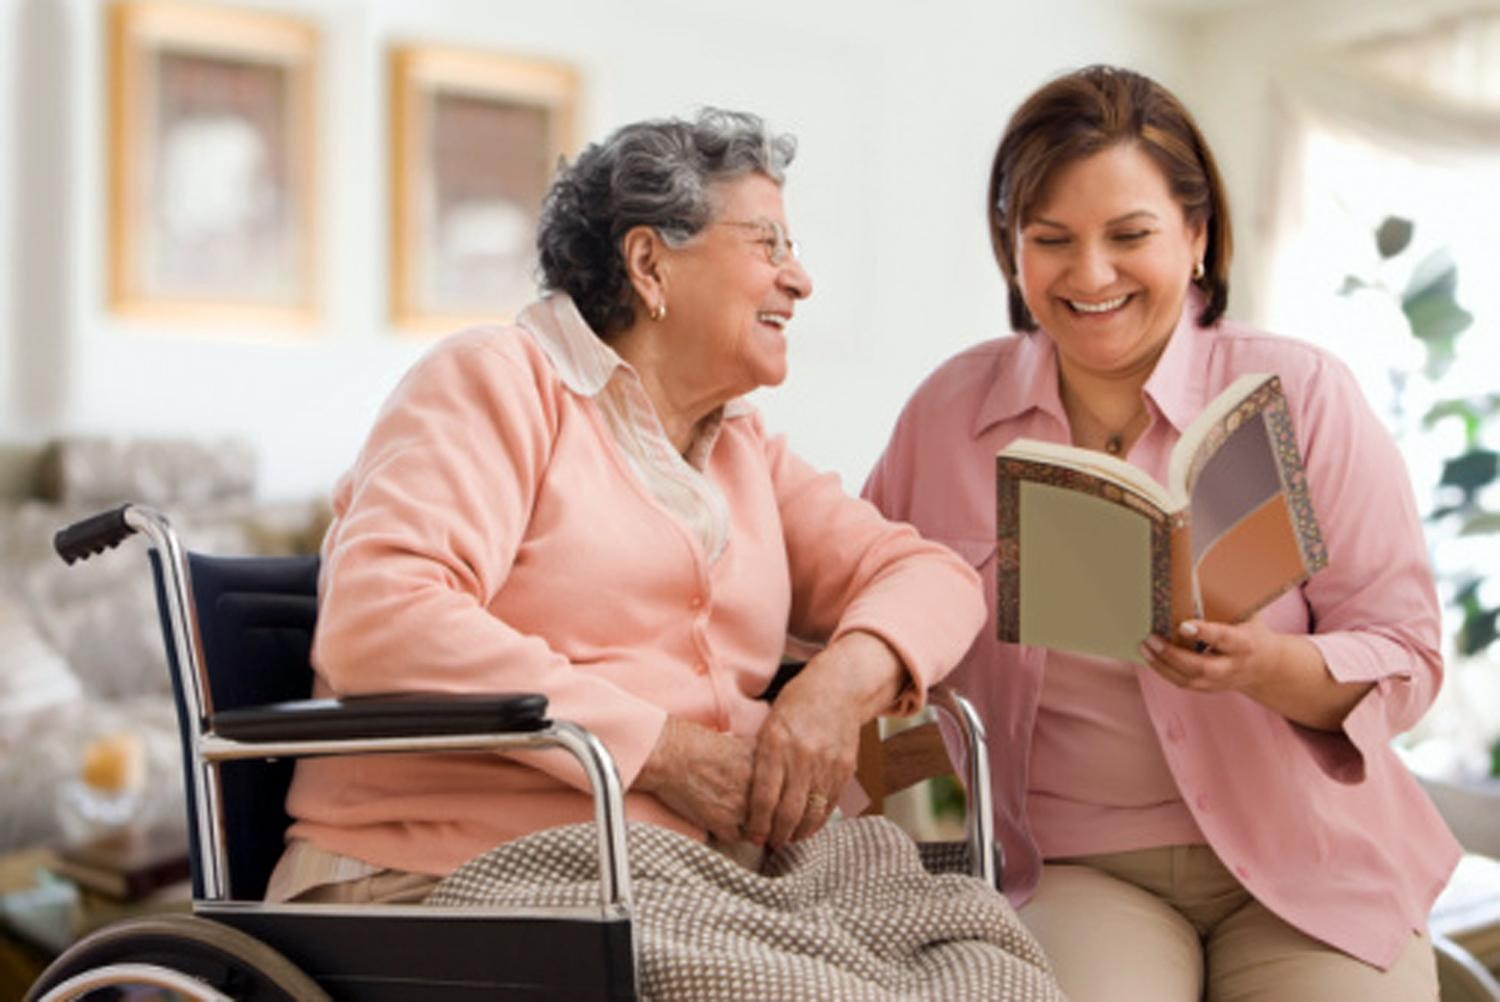 How Visiting Angels is assisting seniors in the community